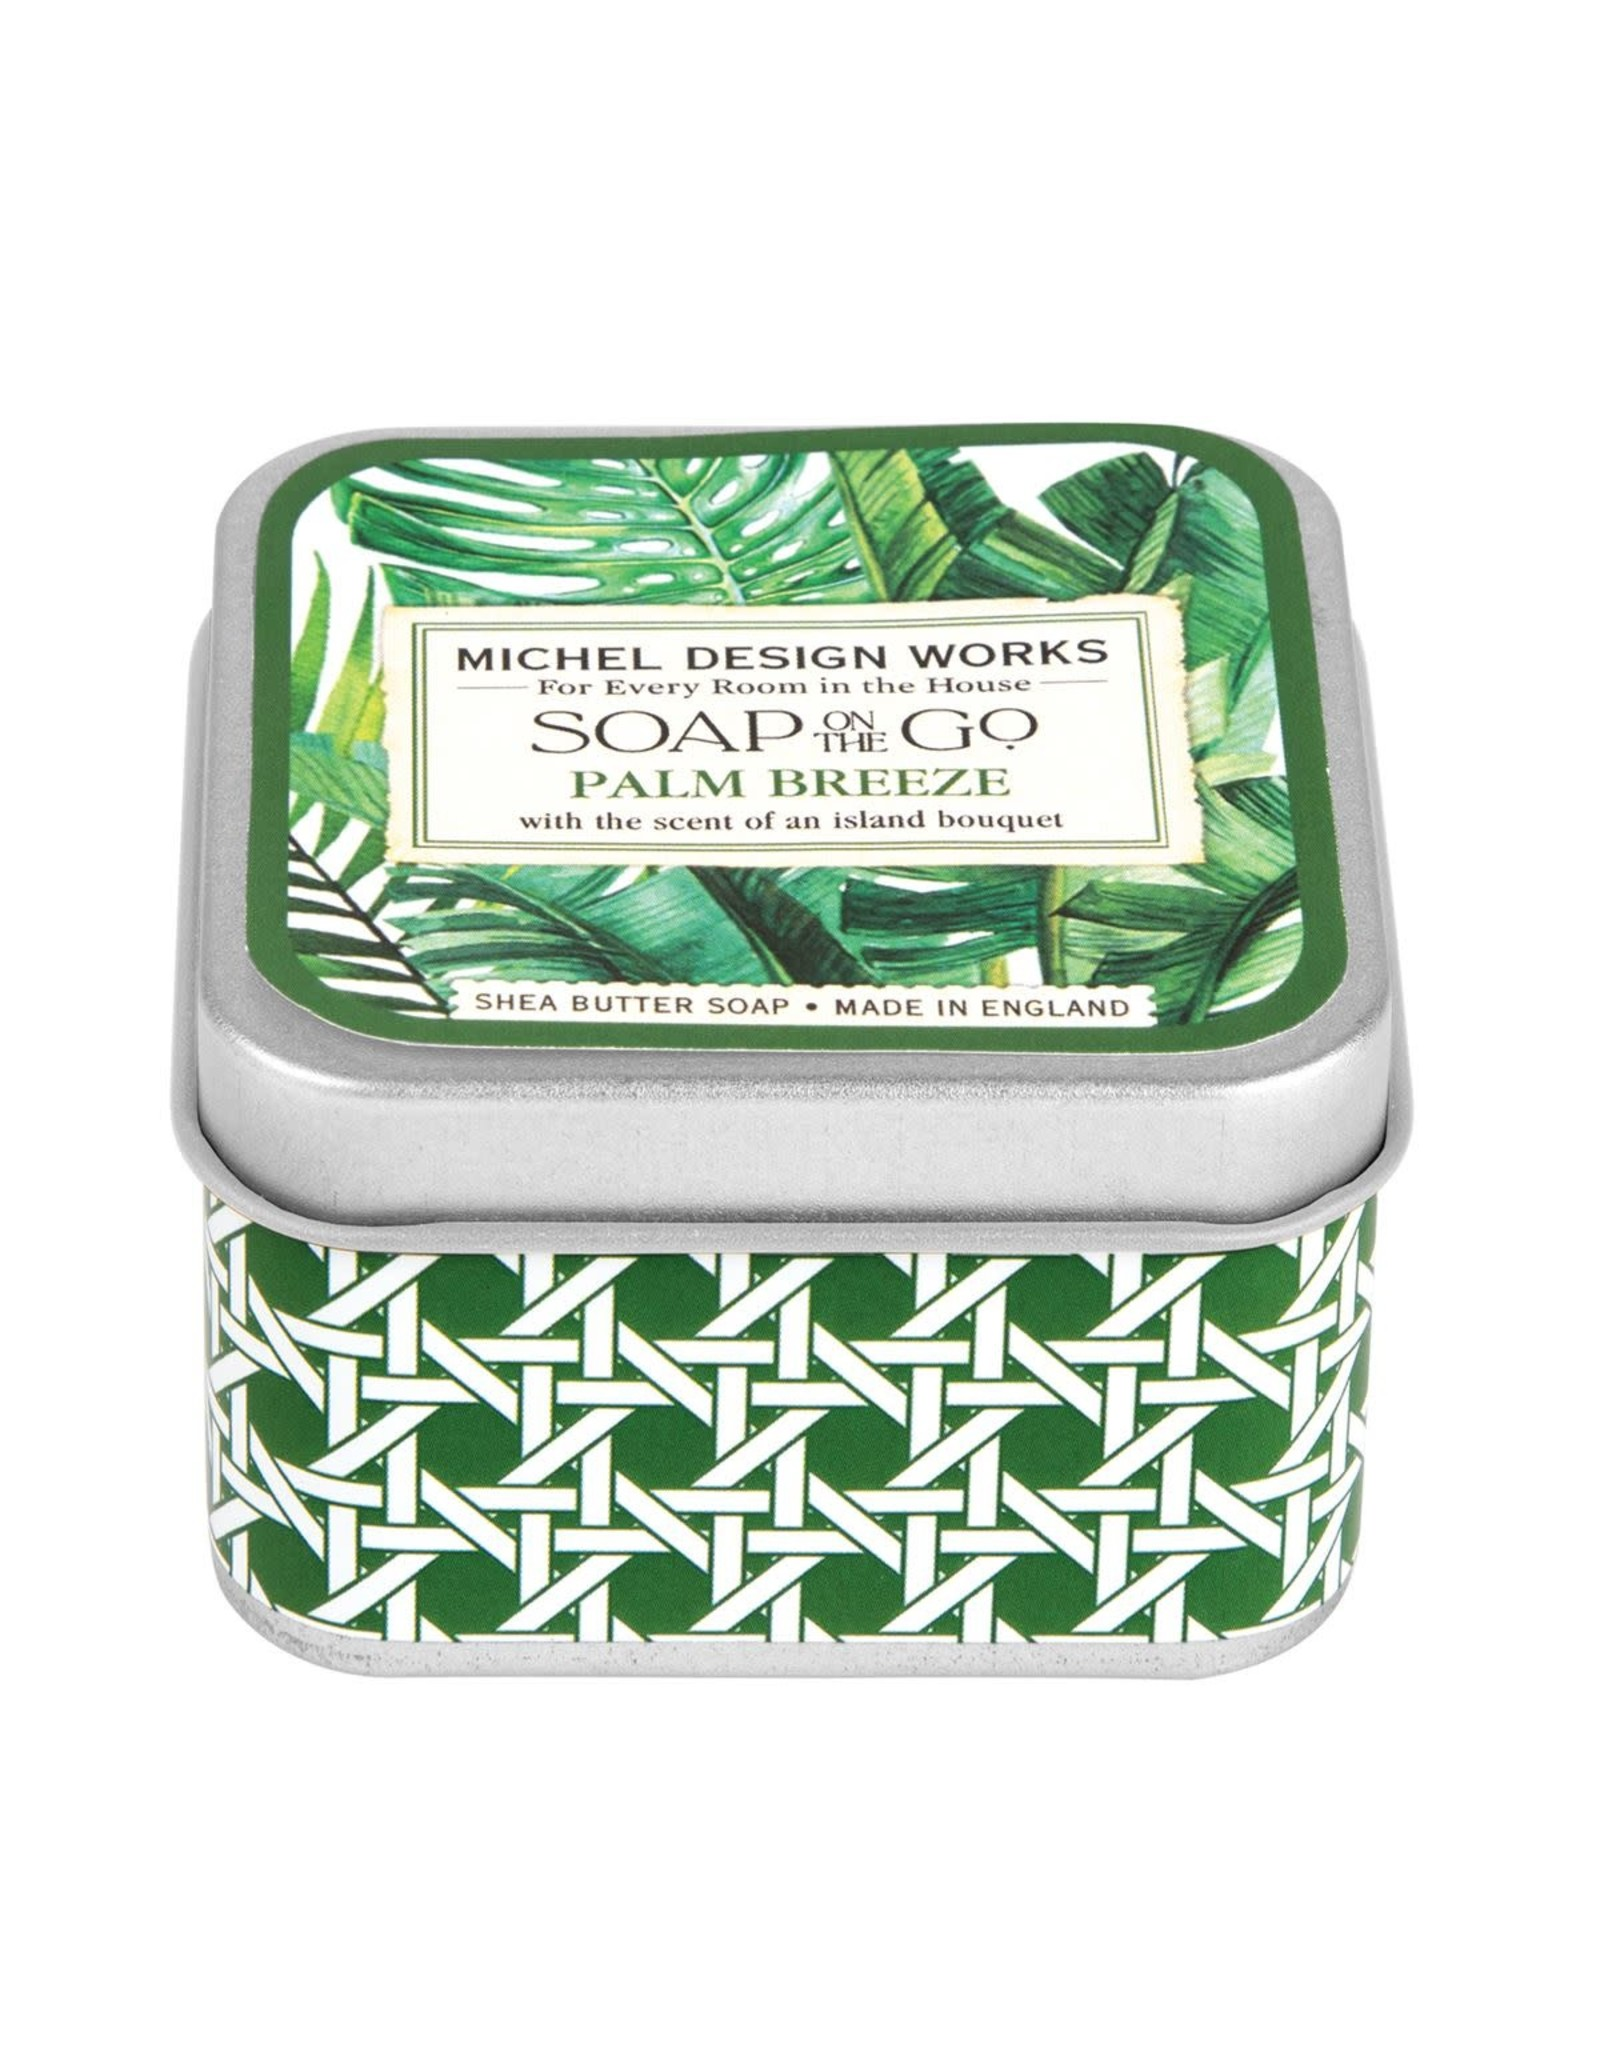 Michel Palm Breeze Soap on the Go